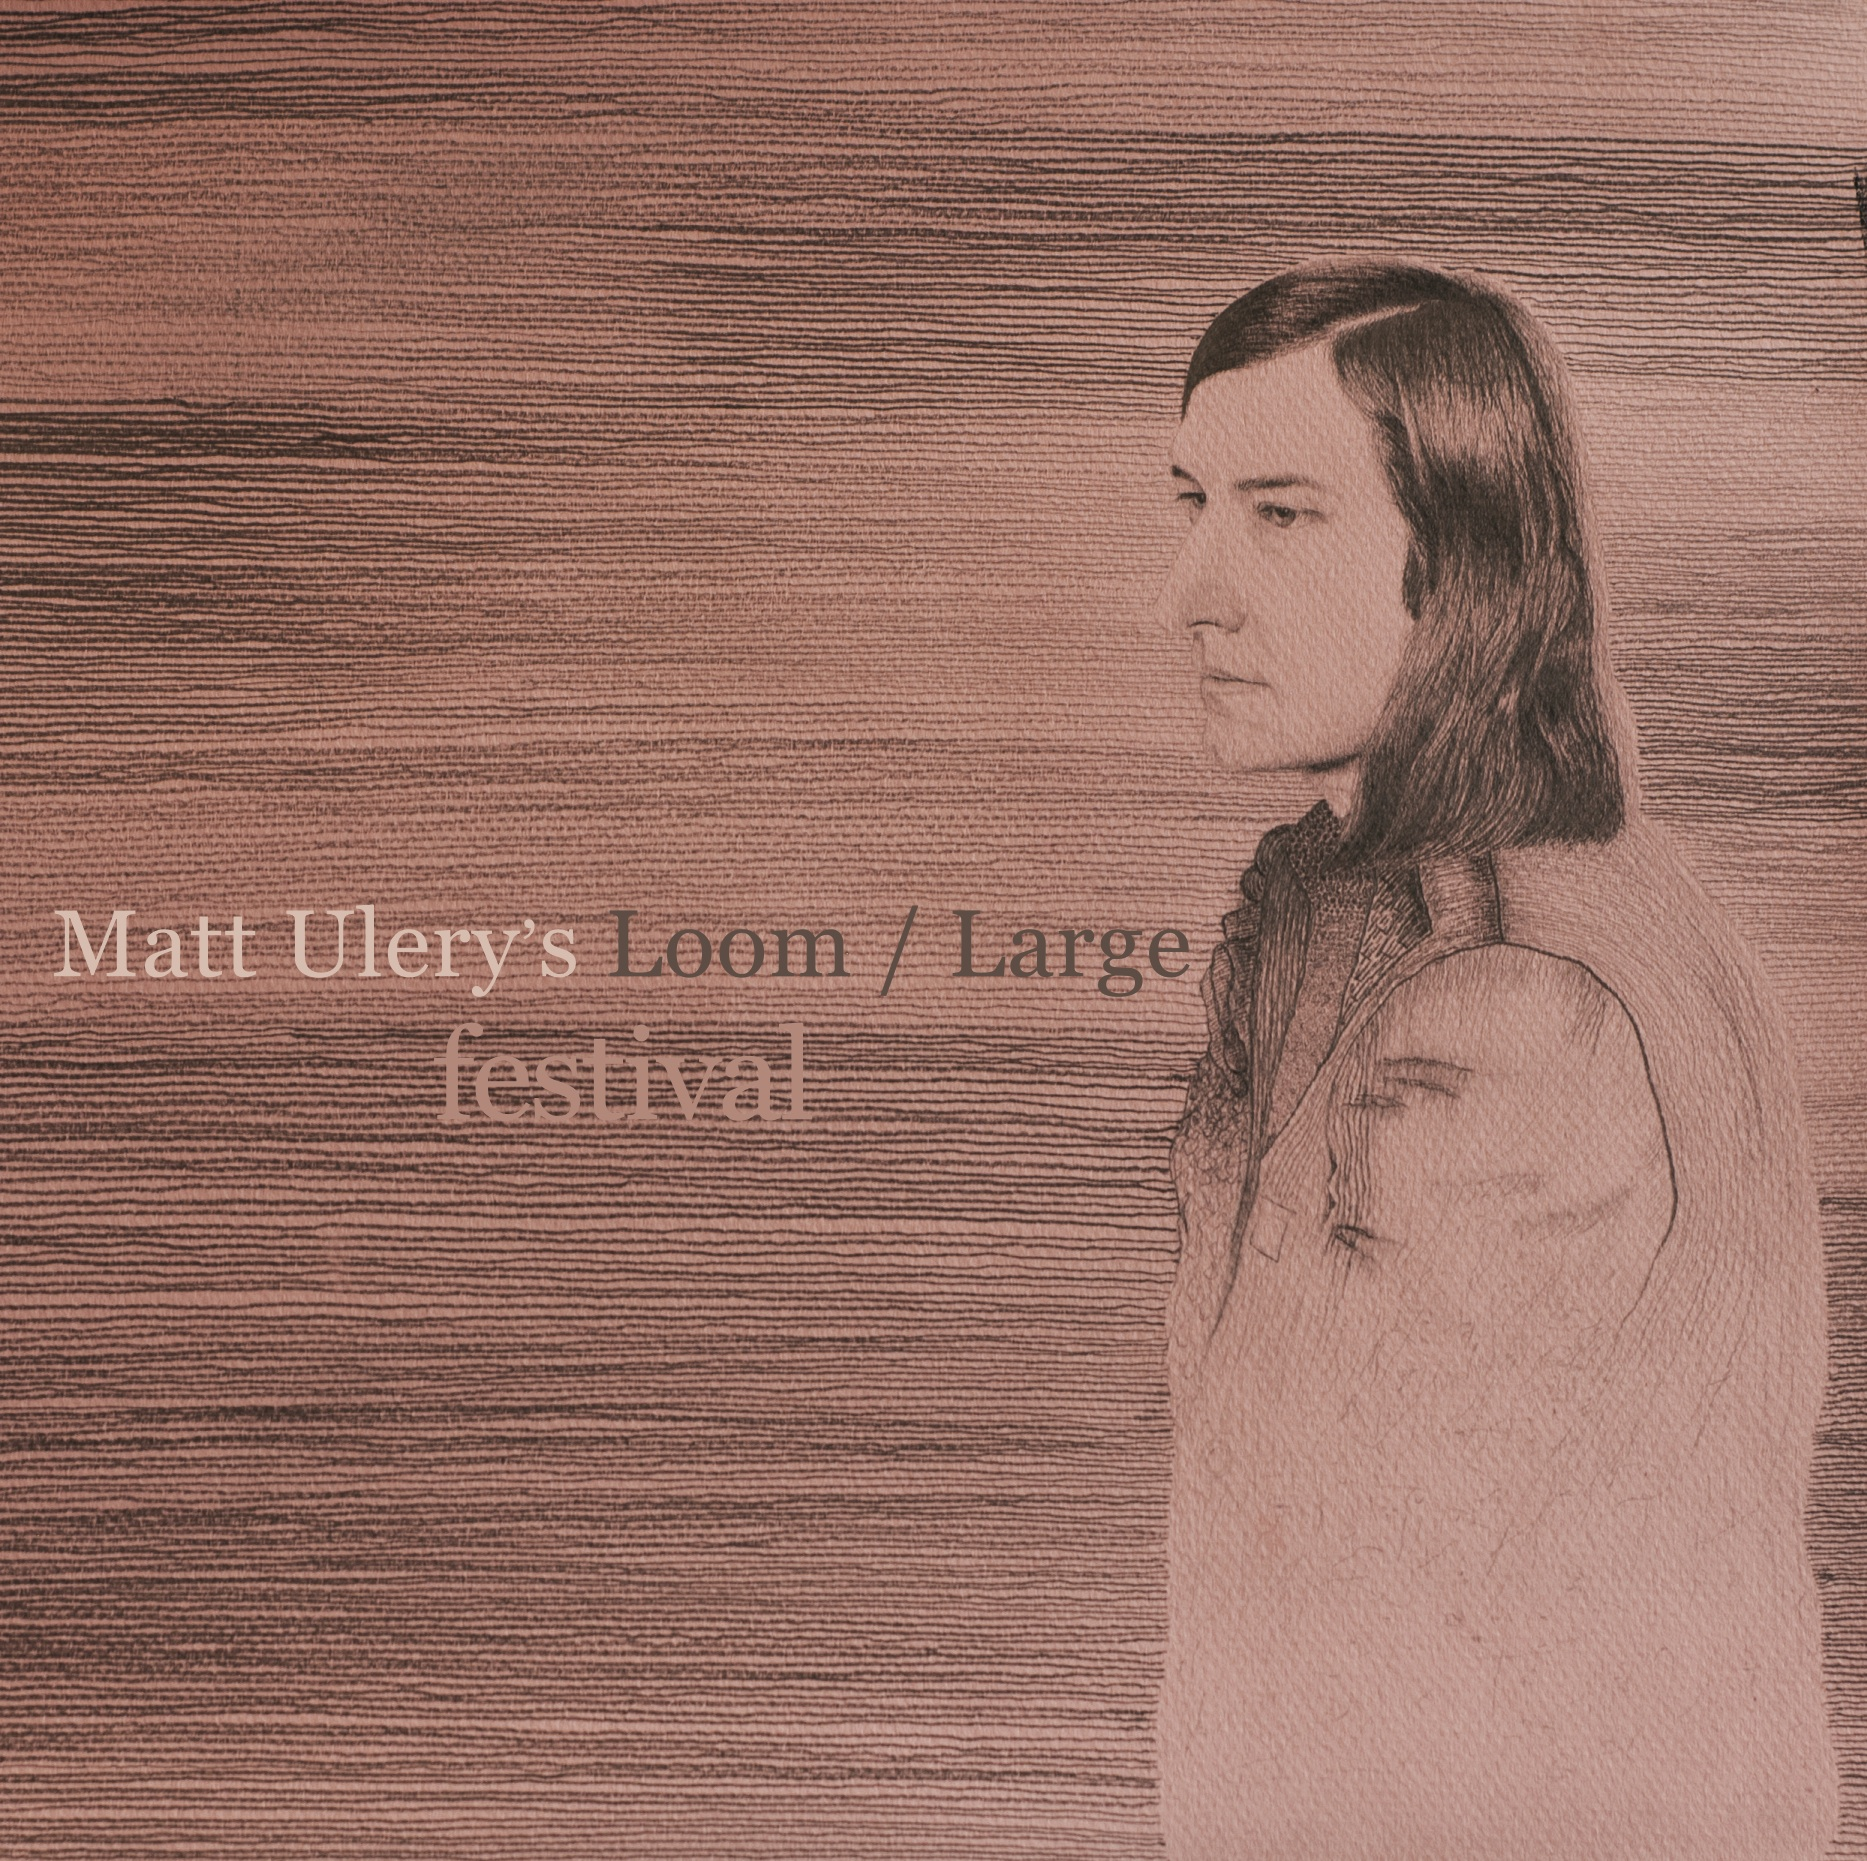 Matt Ulery reviewed by Grego Applegate Edwards!